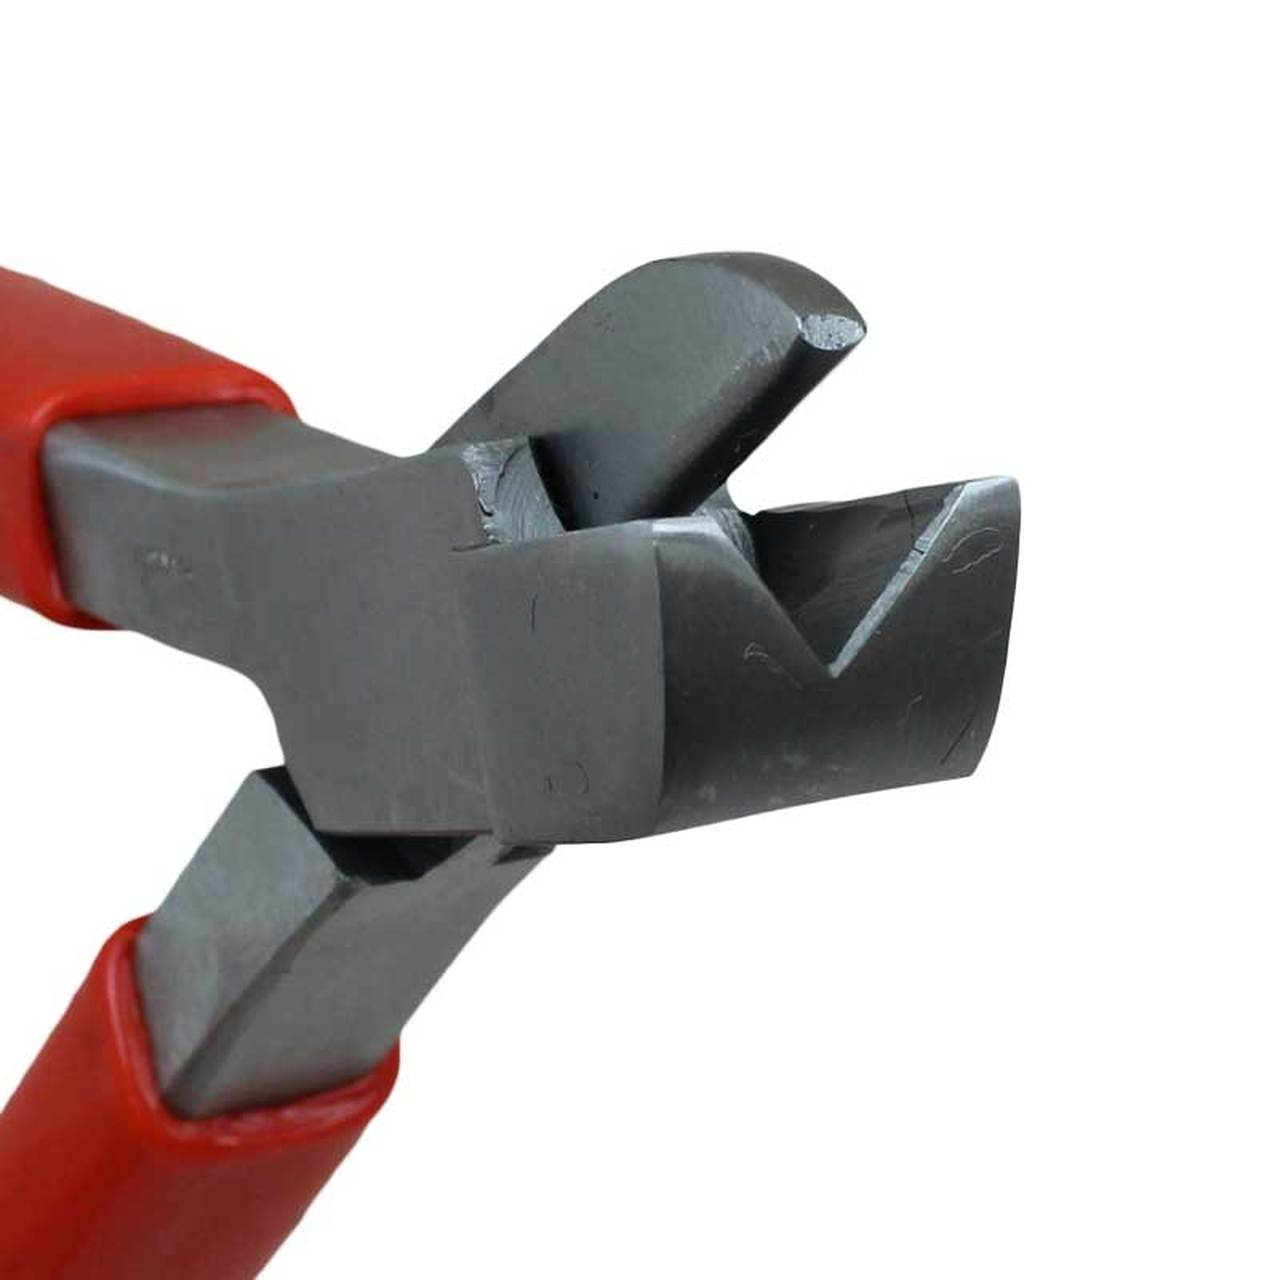 Bow closing pliers to cut solder